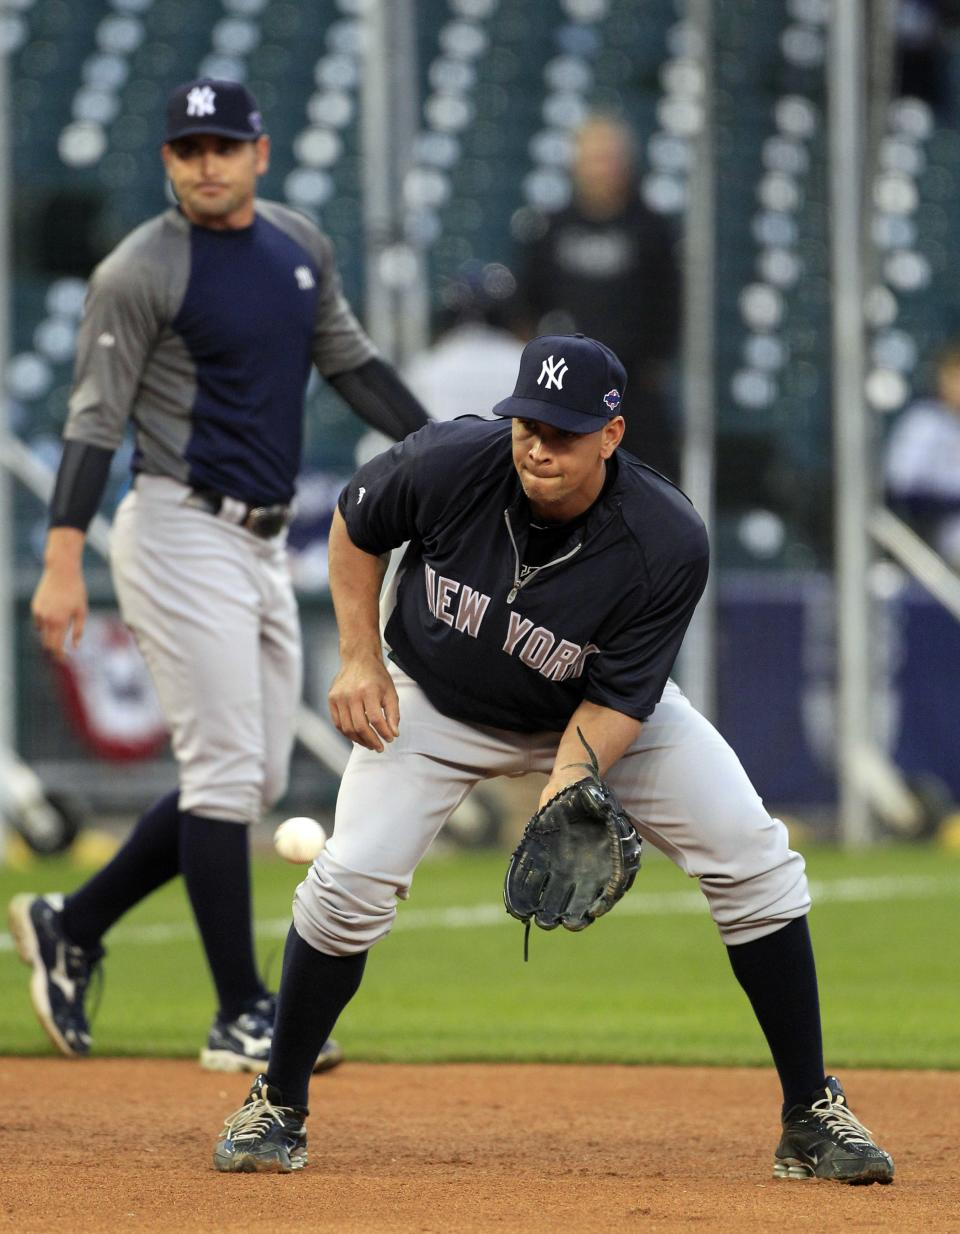 New York Yankees' Alex Rodriguez takes fielding practice before Game 4 of the American League championship series against the Detroit Tigers Wednesday, Oct. 17, 2012, in Detroit. (AP Photo/Carlos Osorio)